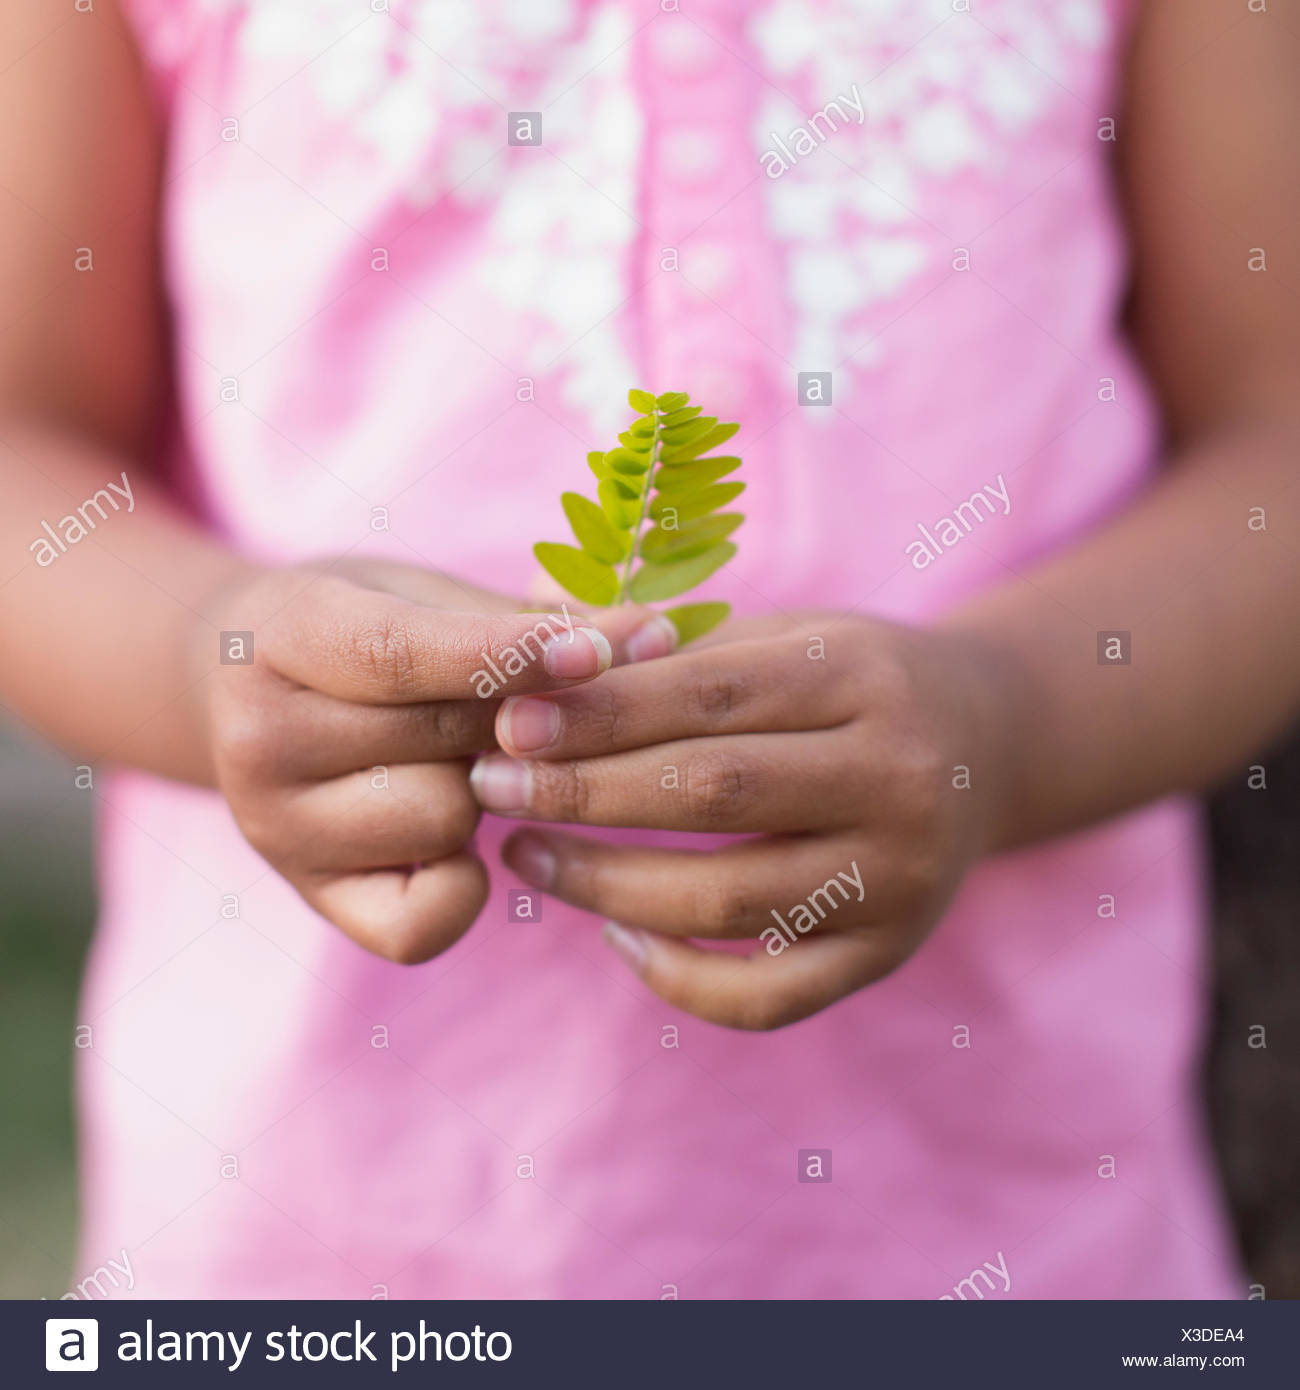 A child, a girl in a pink shirt holding a small fern leaf in her hands. - Stock Image